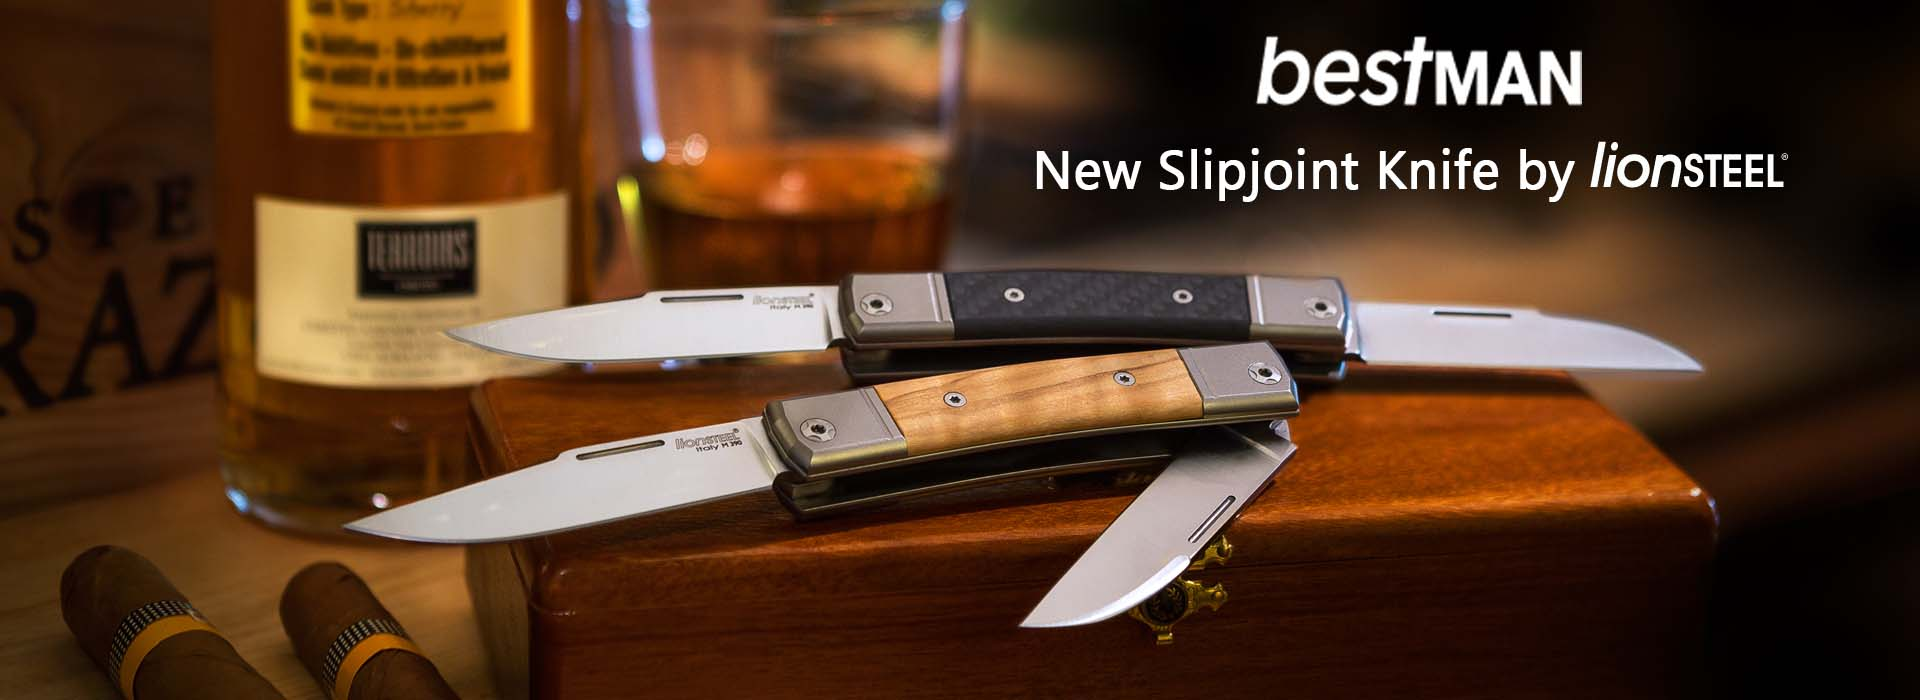 Küchenmesser Real Lionsteel Cutlery Maniago Knife Manufacturing And Online Sale